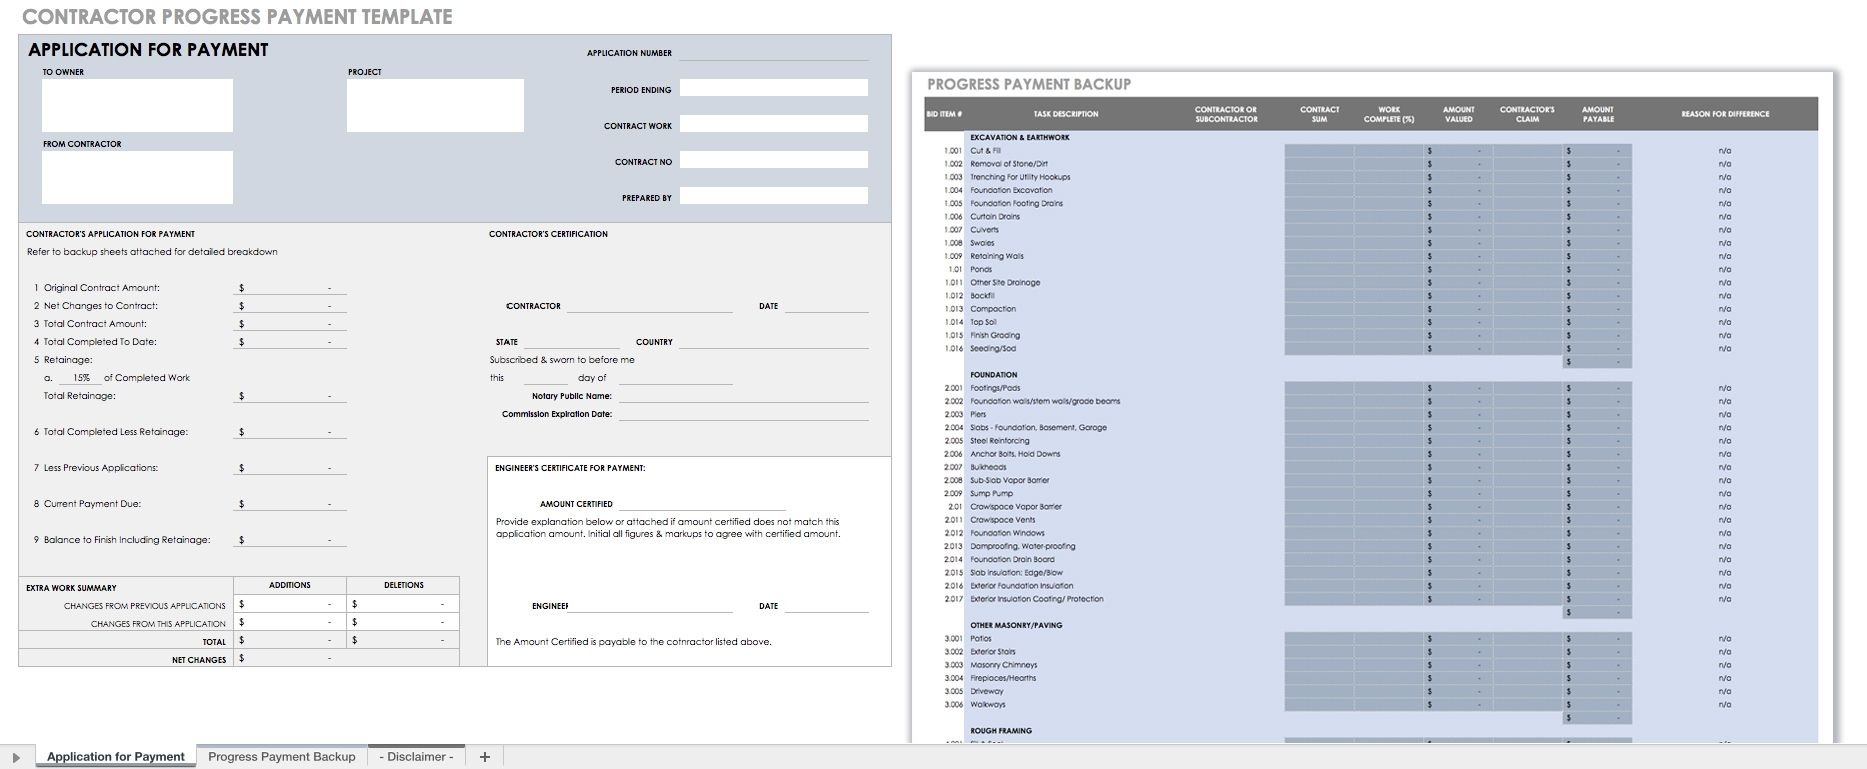 55 Free Invoice Templates   Smartsheet with regard to Layout Sheet For Bill Paying